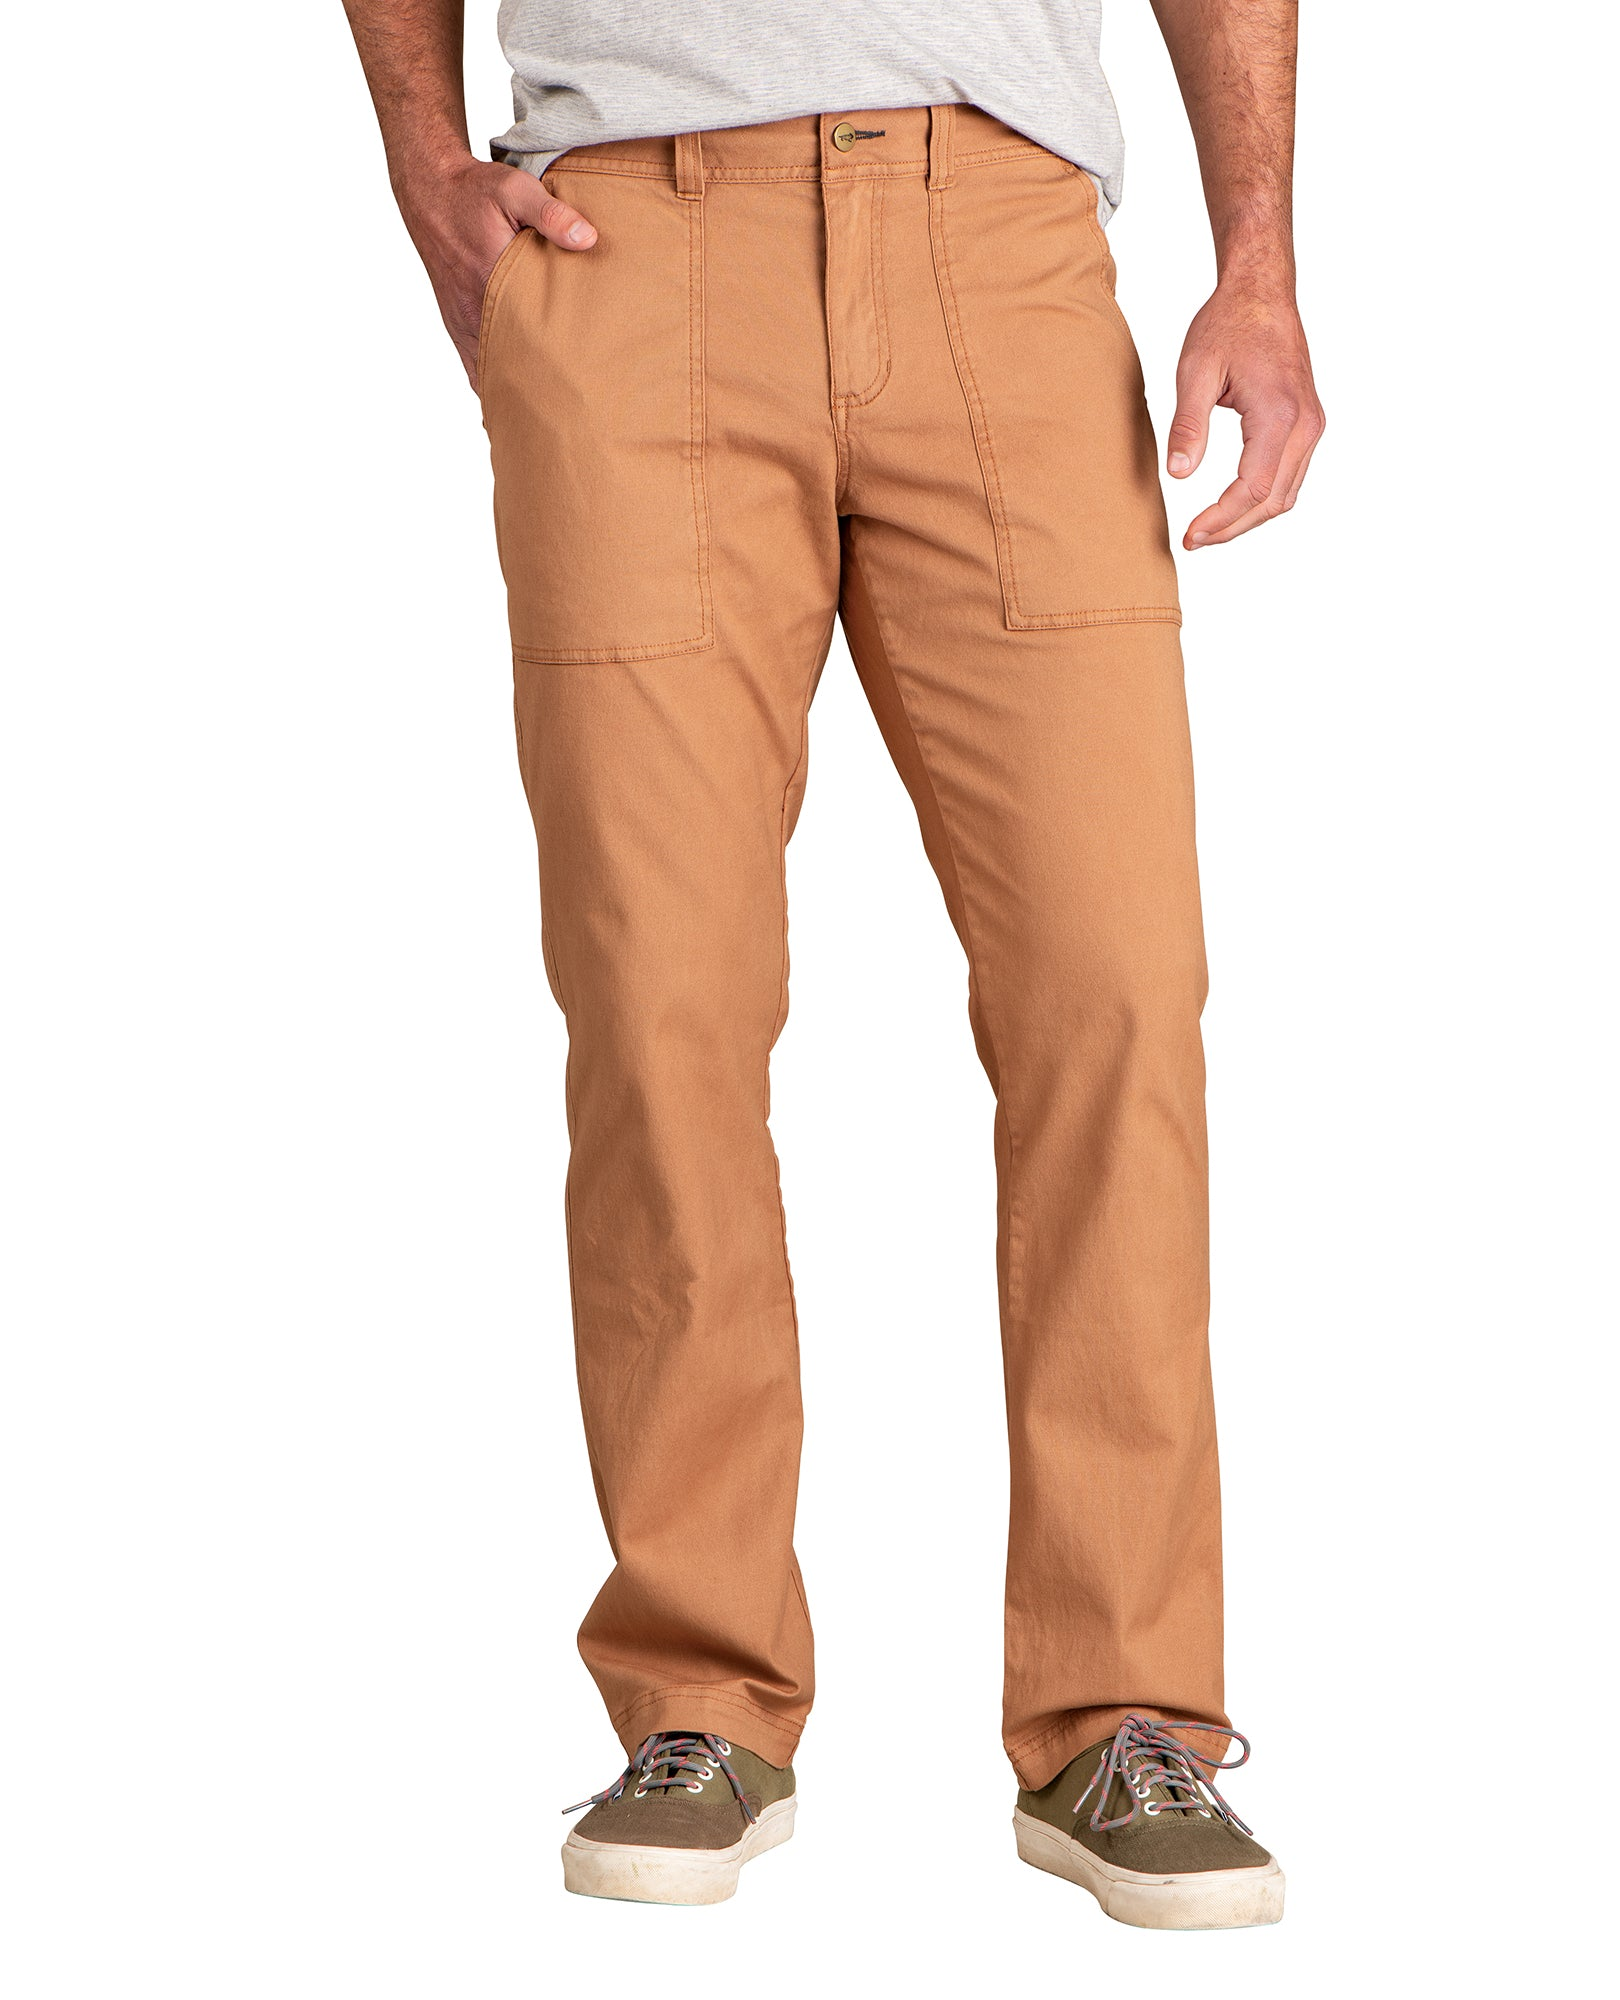 sand brown colour with two long pockets in the front. Regular fit.